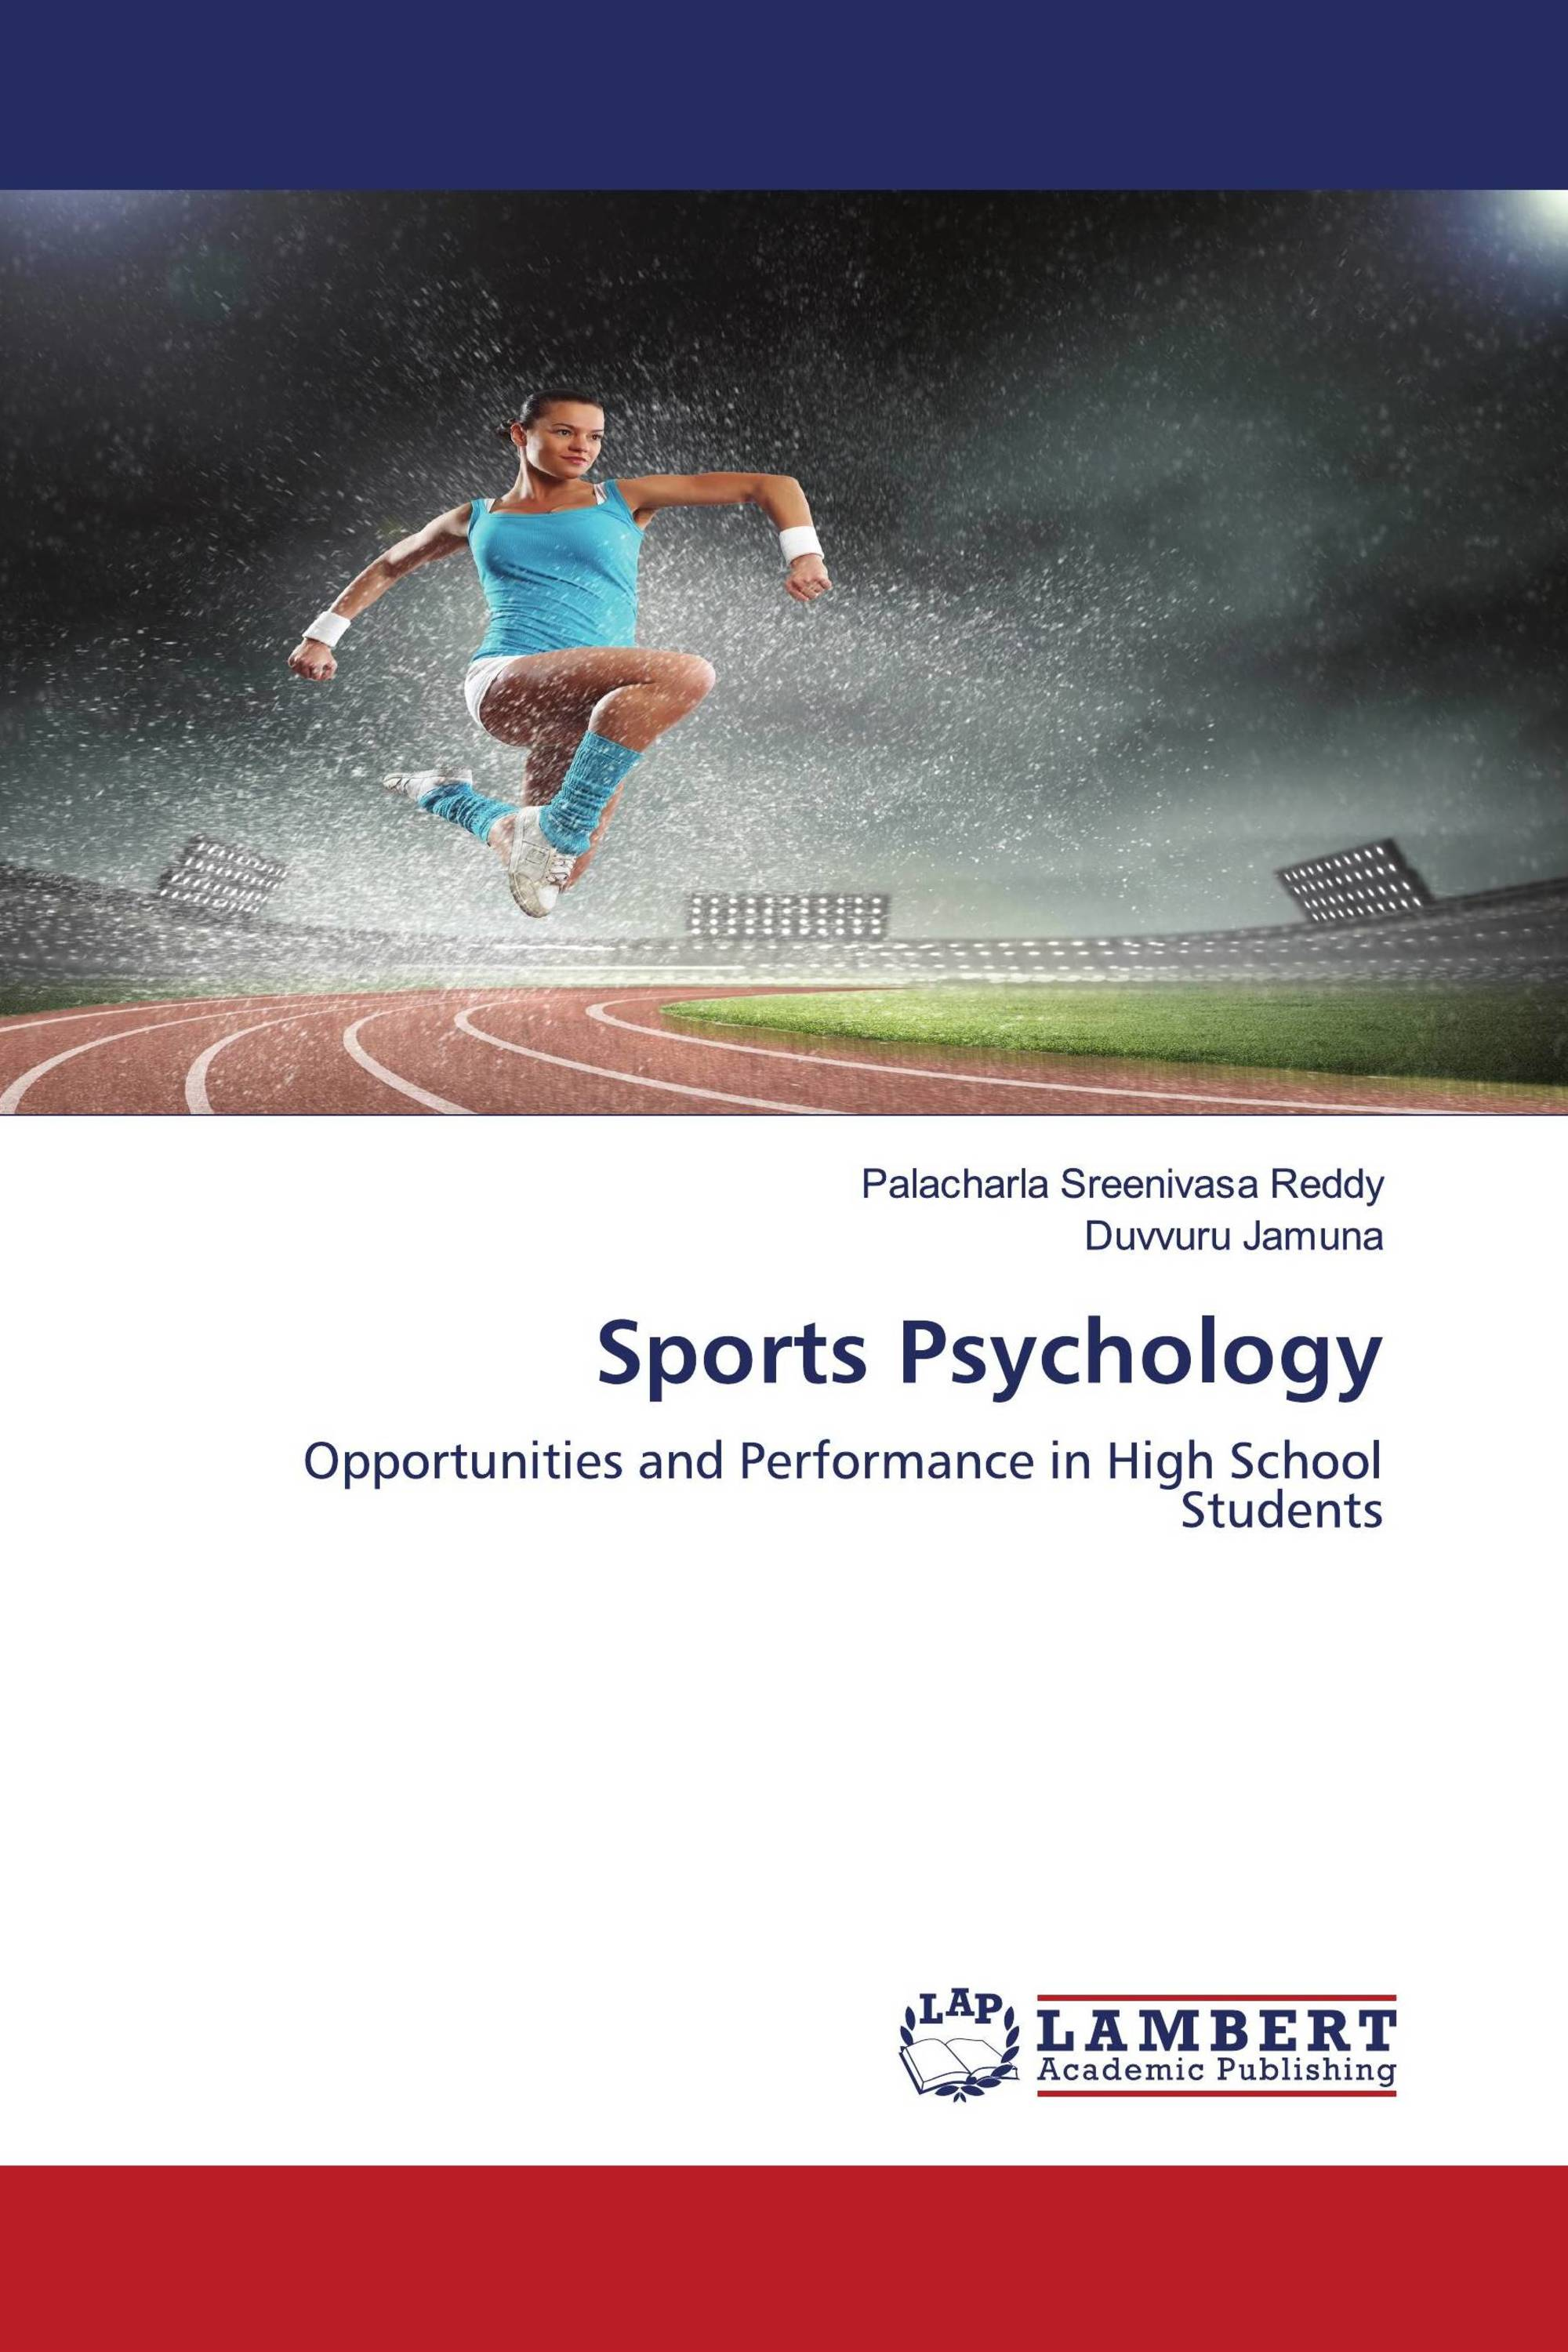 sports pshycology Explore sport psychology masters degrees & graduate programs on gradschoolscom the #1 site for accredited colleges explore thousands of master's degree in sports psychology options on gradschoolscom.